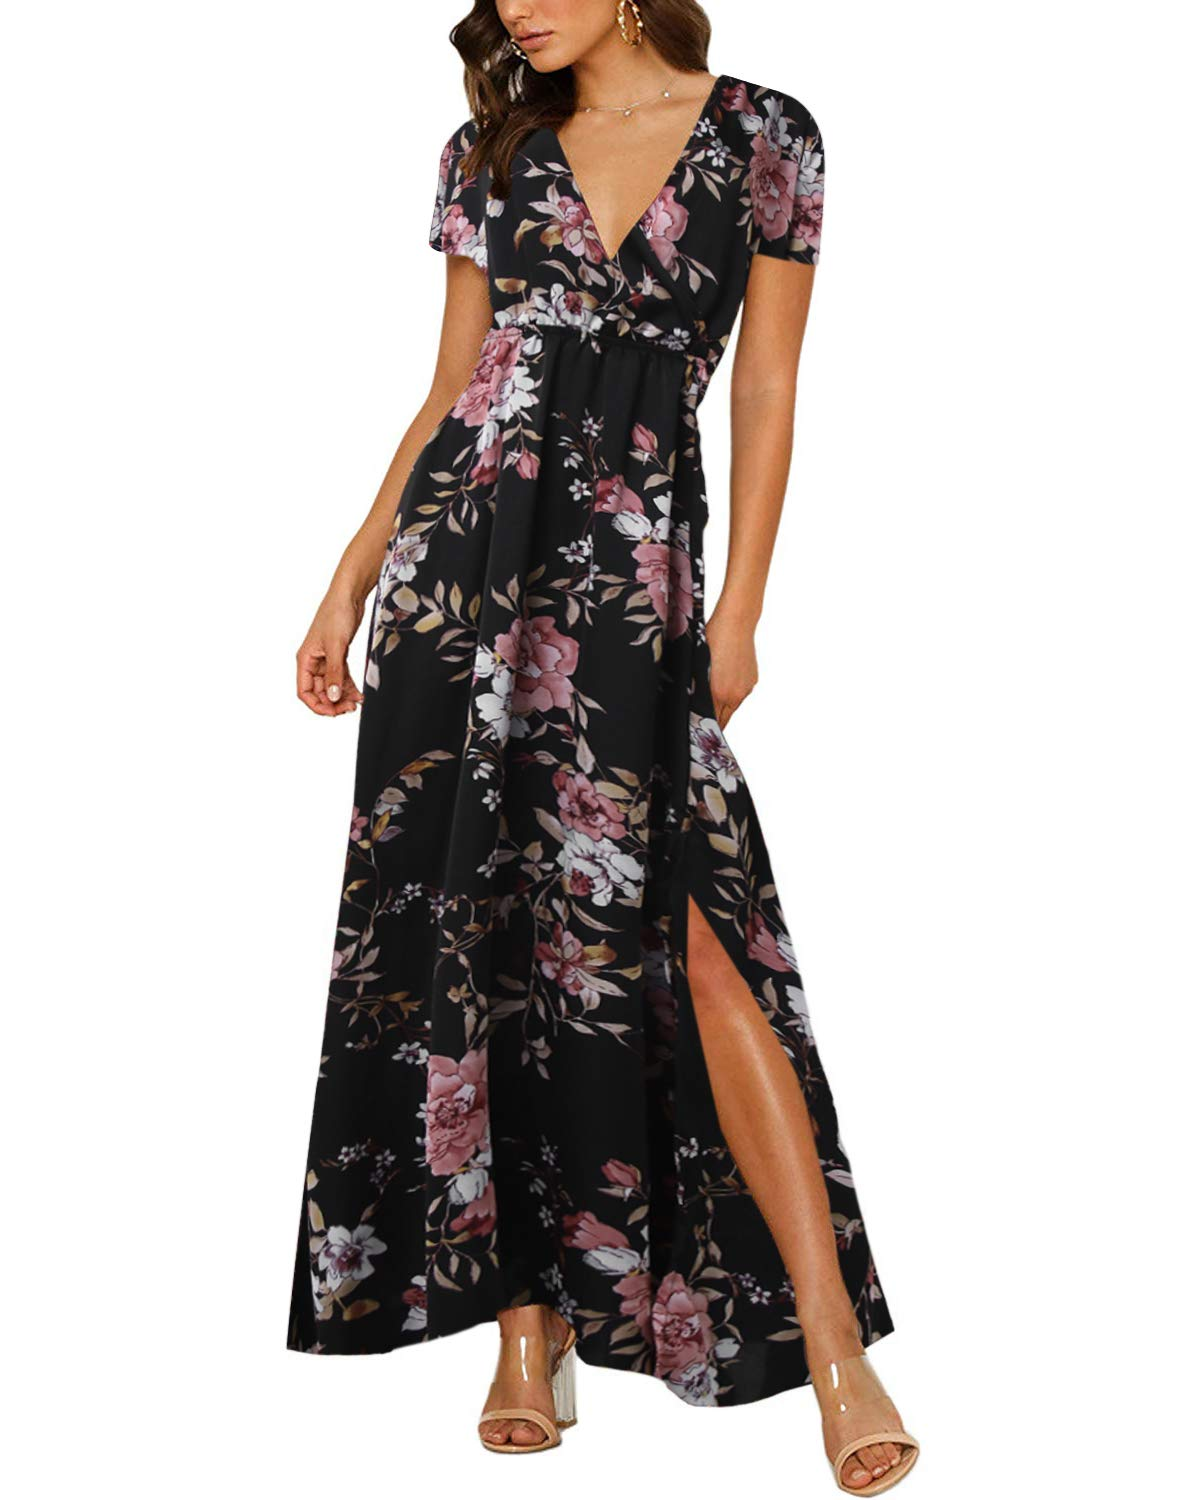 Beach Cocktail Dresses V Neck Dress Long Casual Womens women/'s Floral Loose Maxi